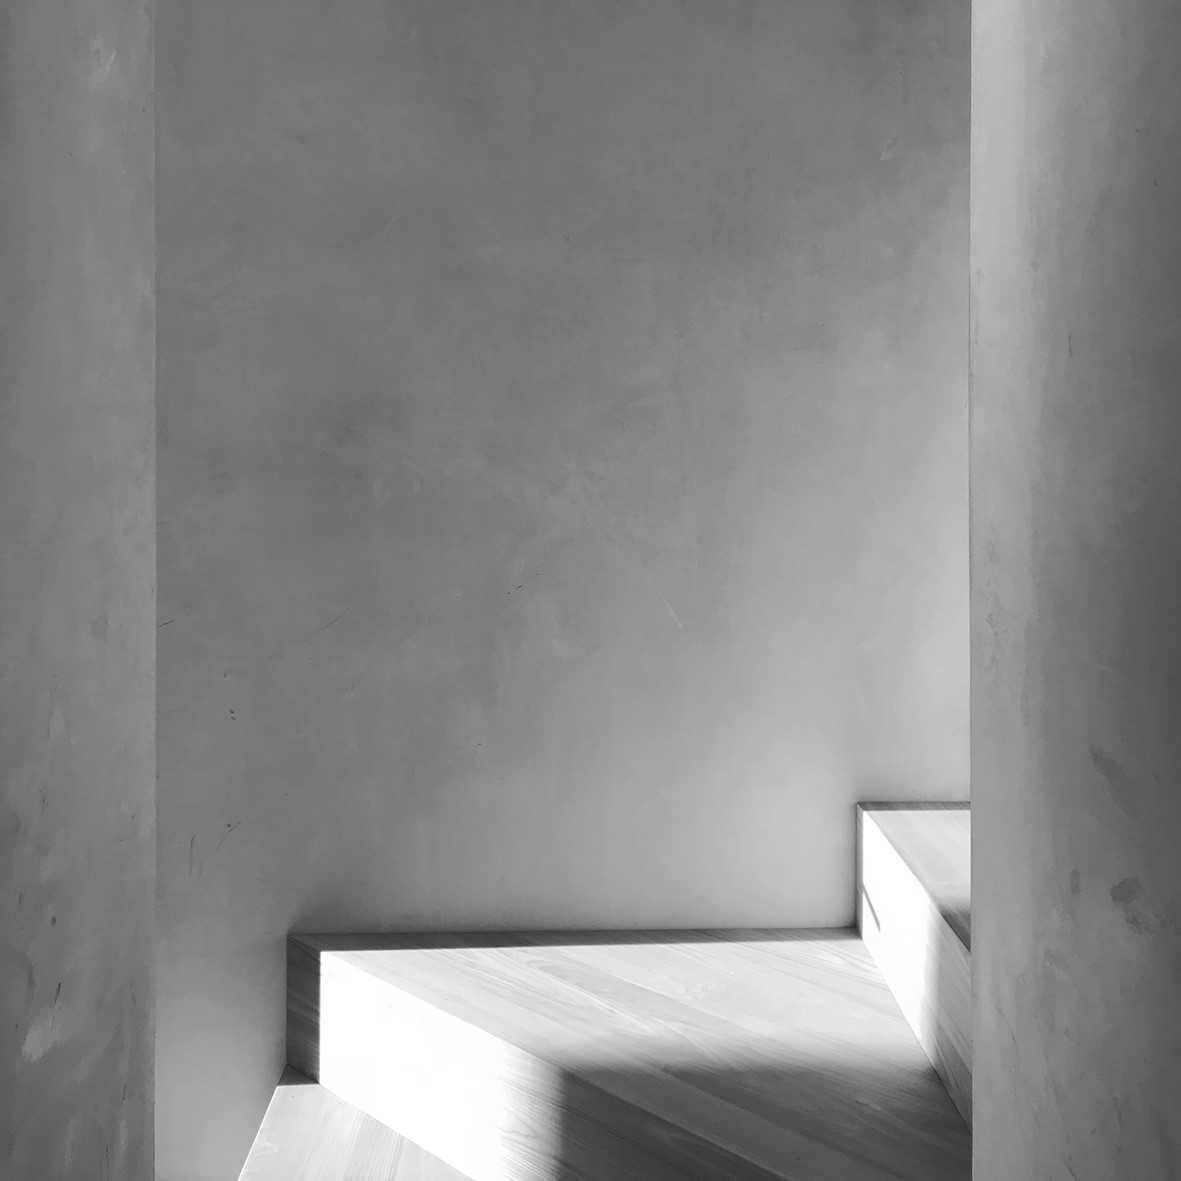 Black and white photograph of stairwell